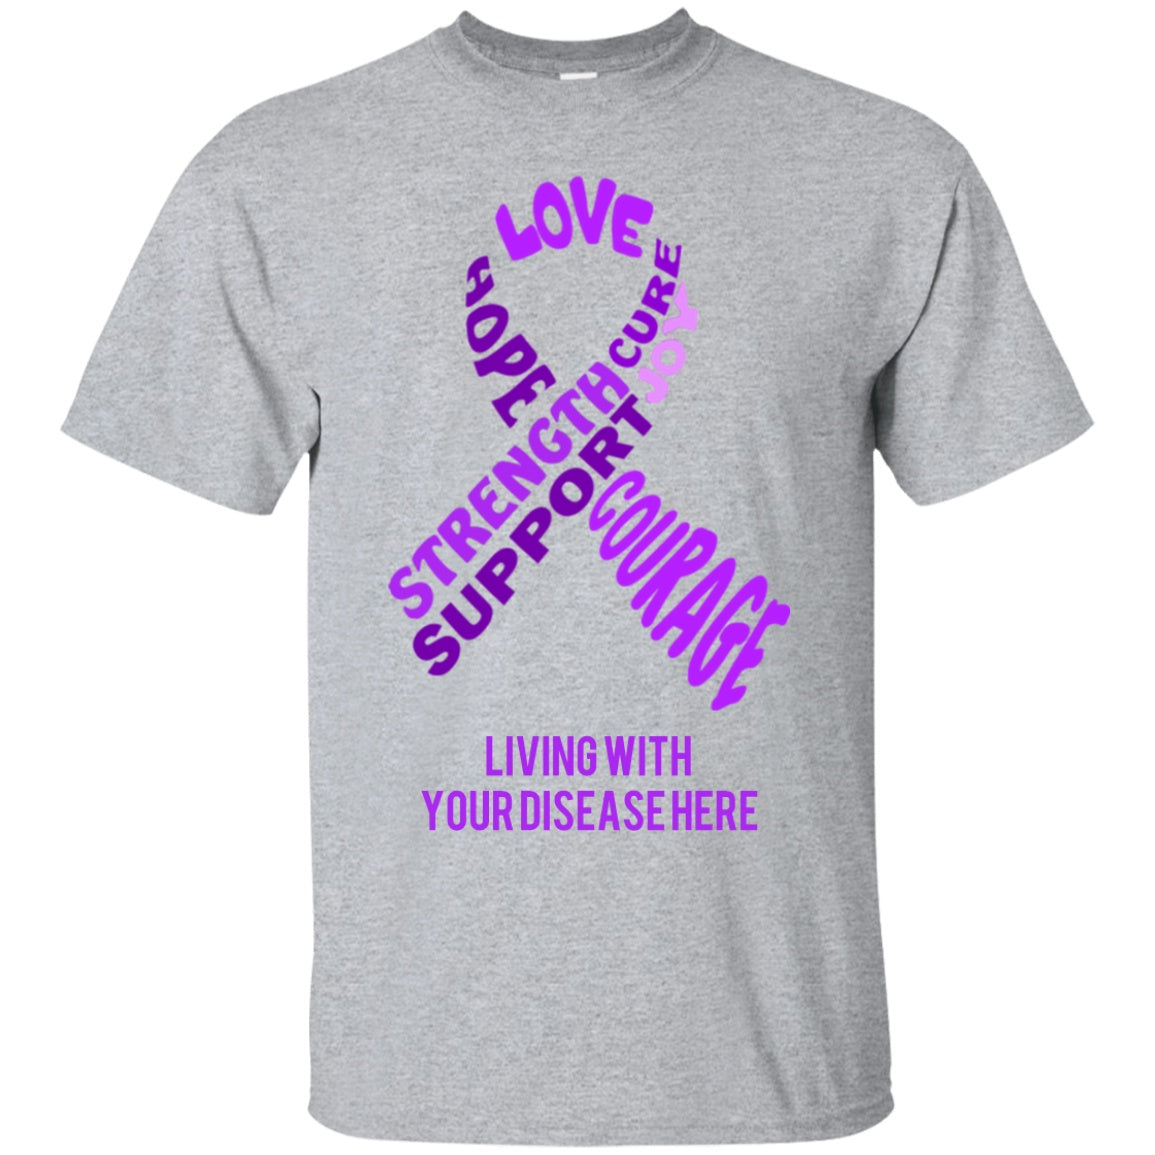 Customisable Purple Awareness Ribbon With Words Unisex Shirt - The Unchargeables